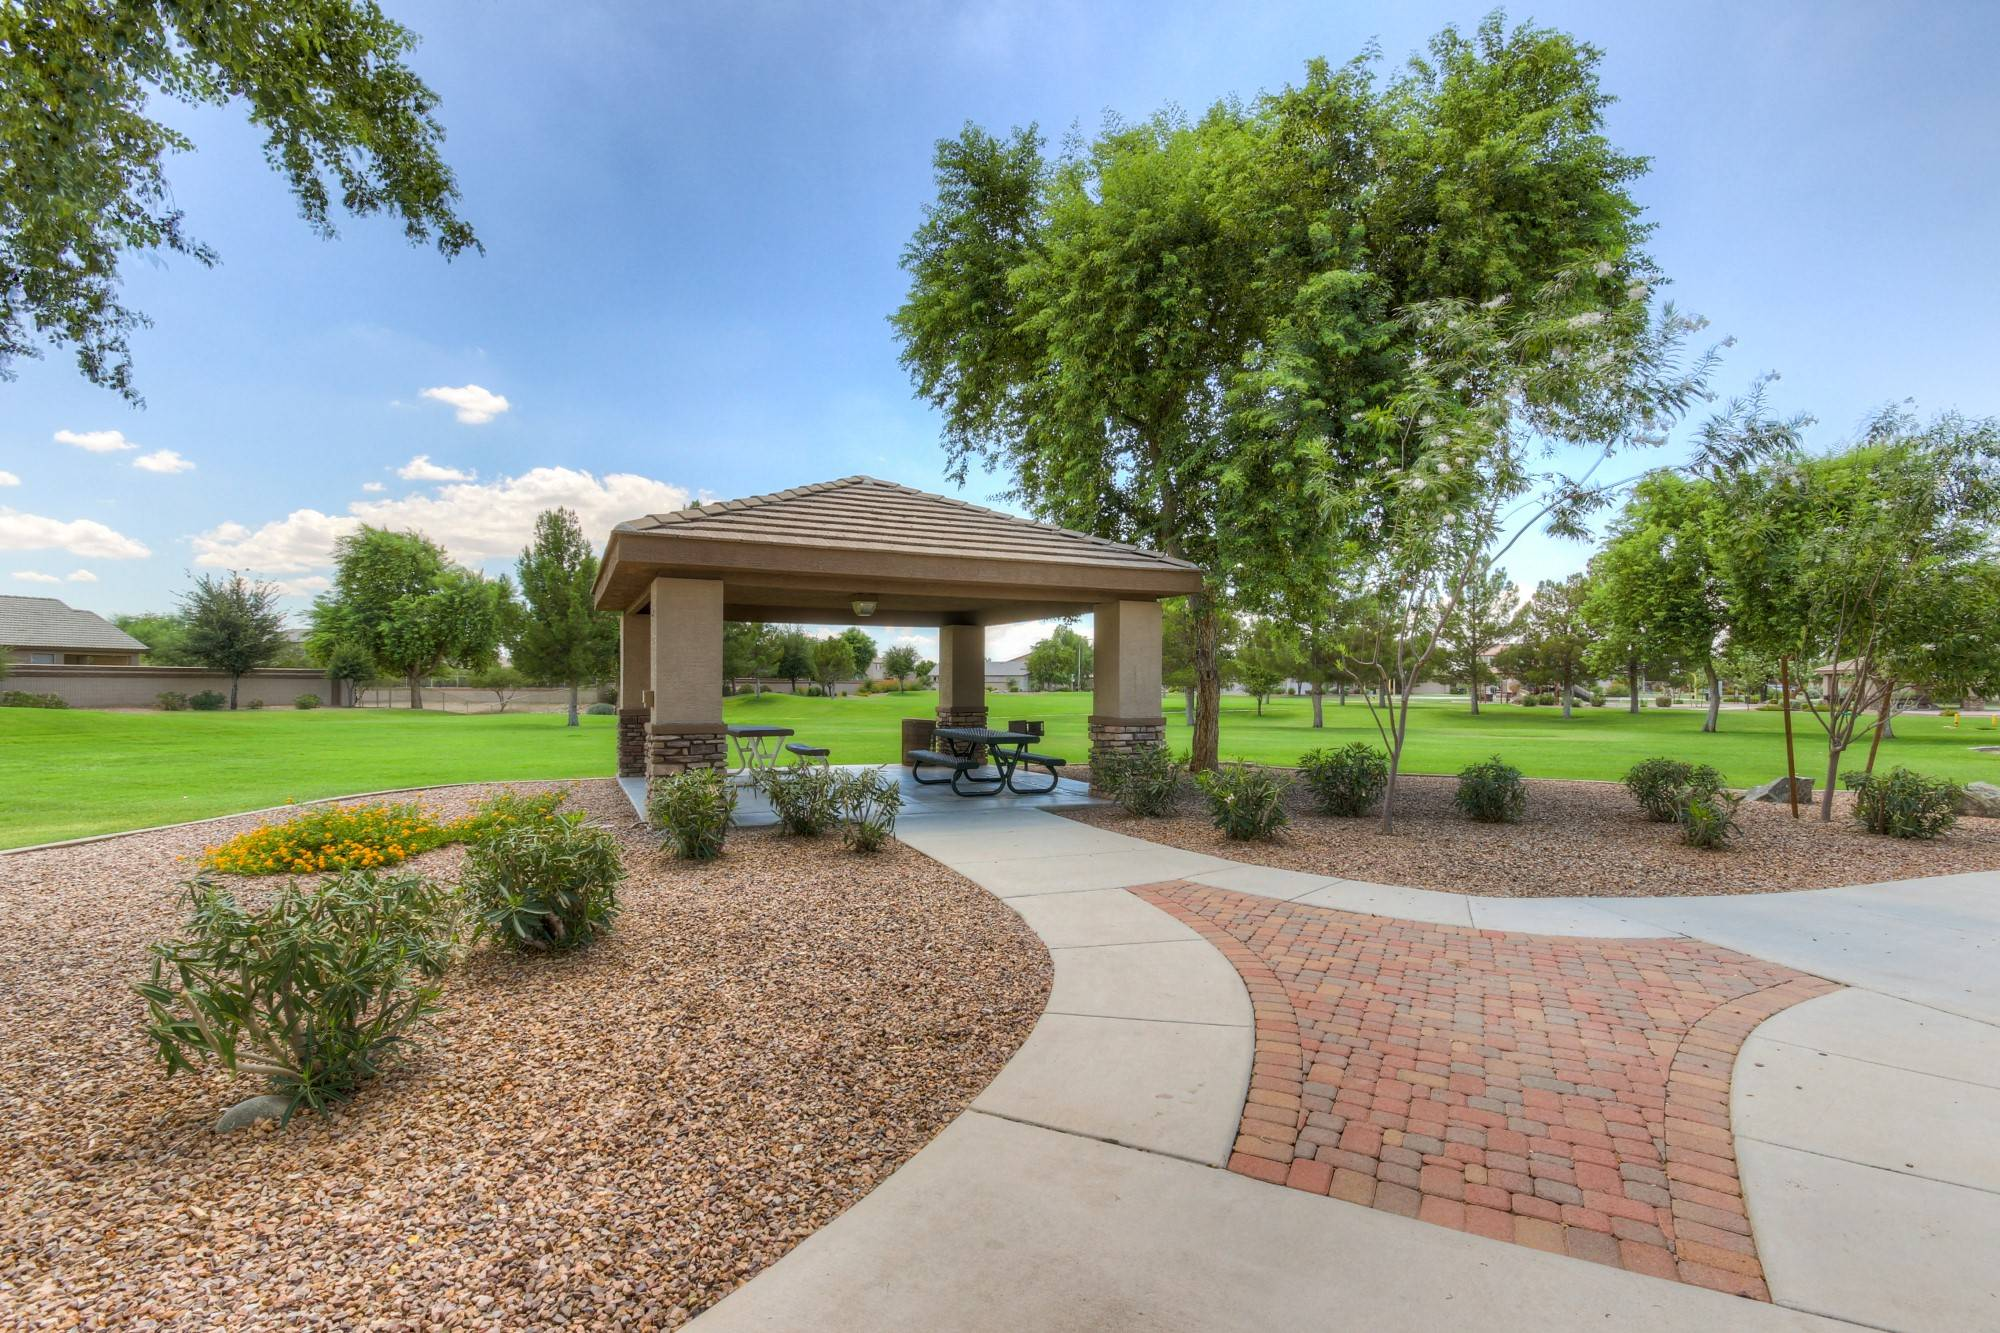 Coldwater springs in avondale arizona for Avondale park homes